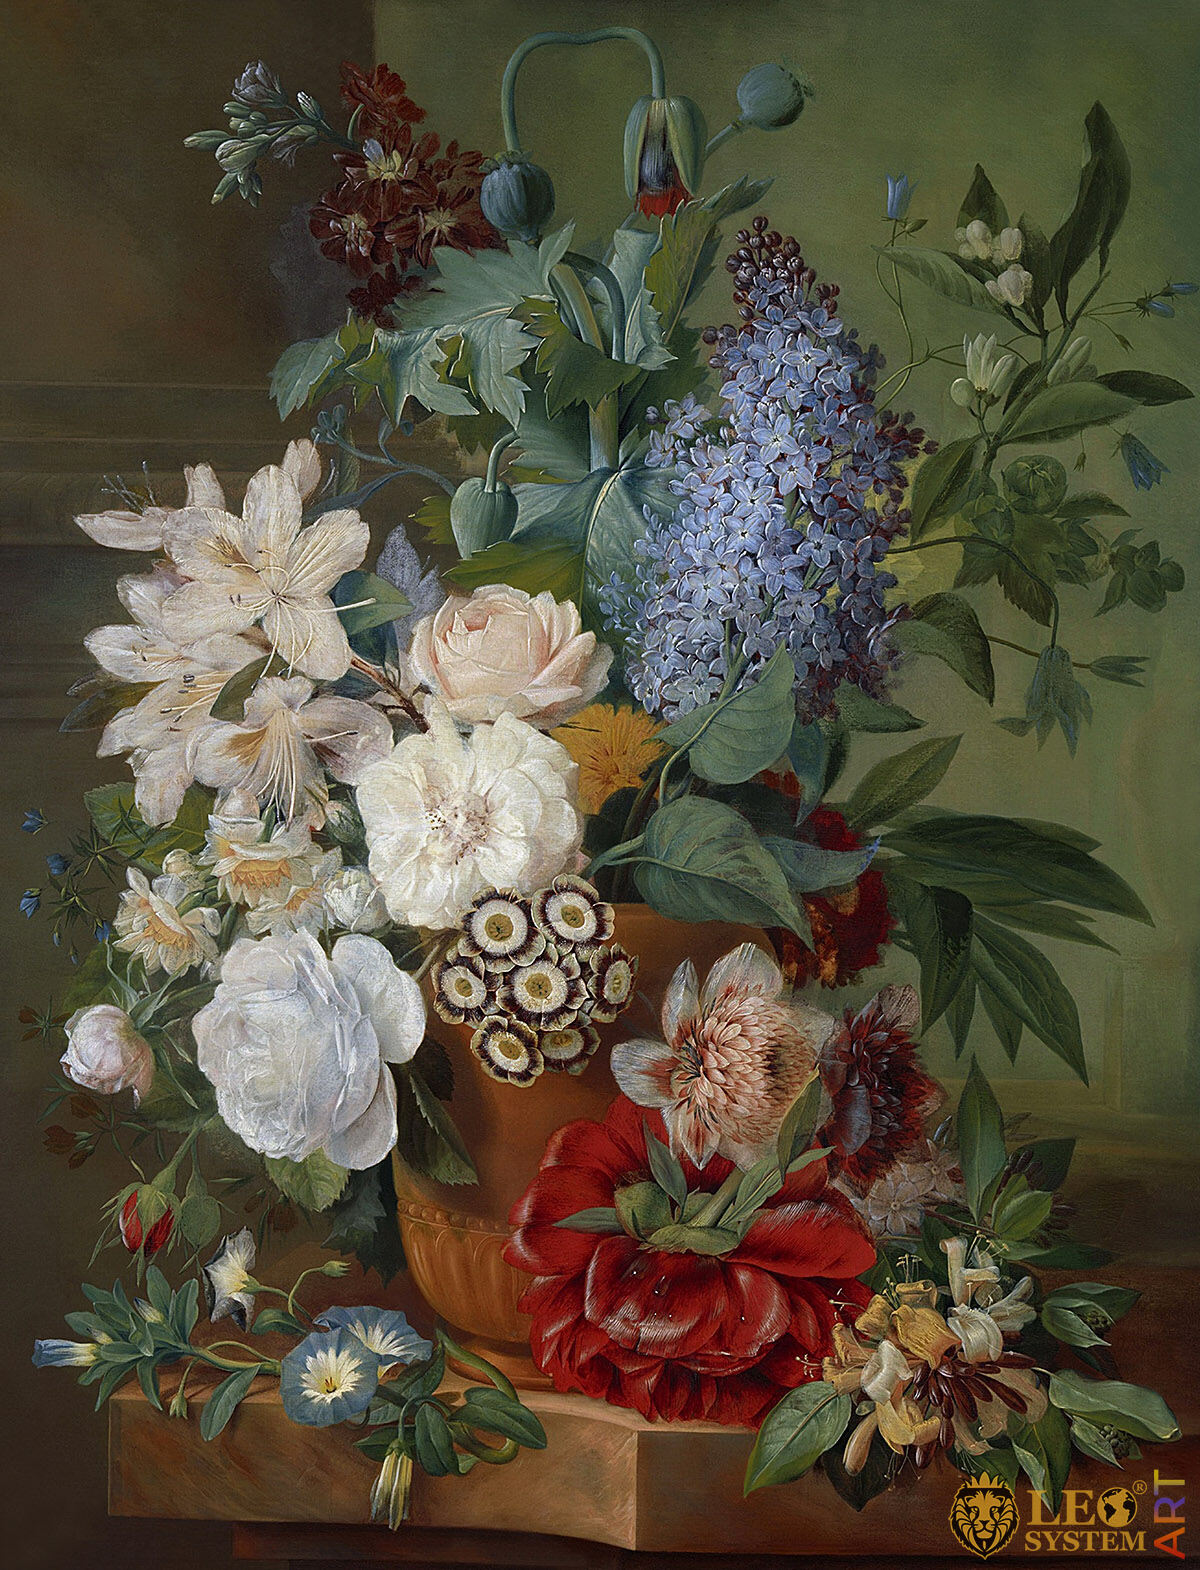 Oil painting with flowers in a vase